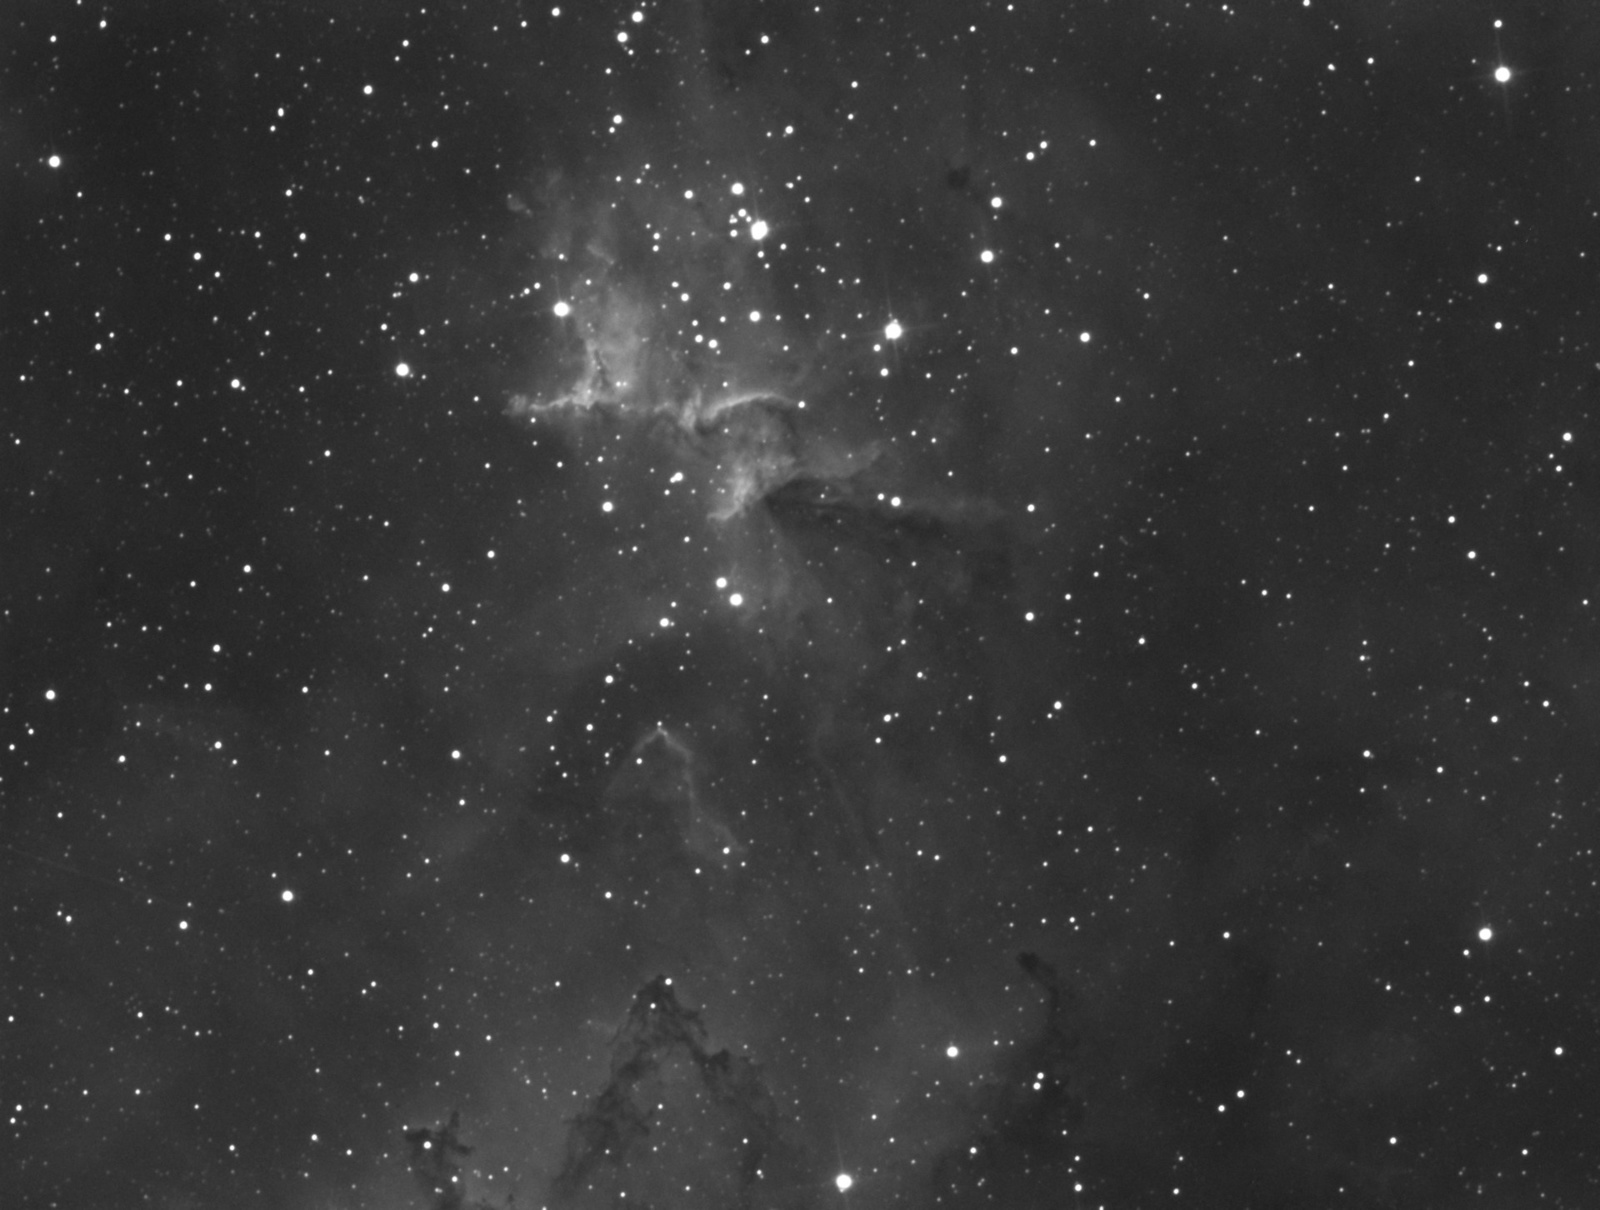 Melotte15_resize.thumb.jpg.97747d50c40aa91afed59569712a9f46.jpg